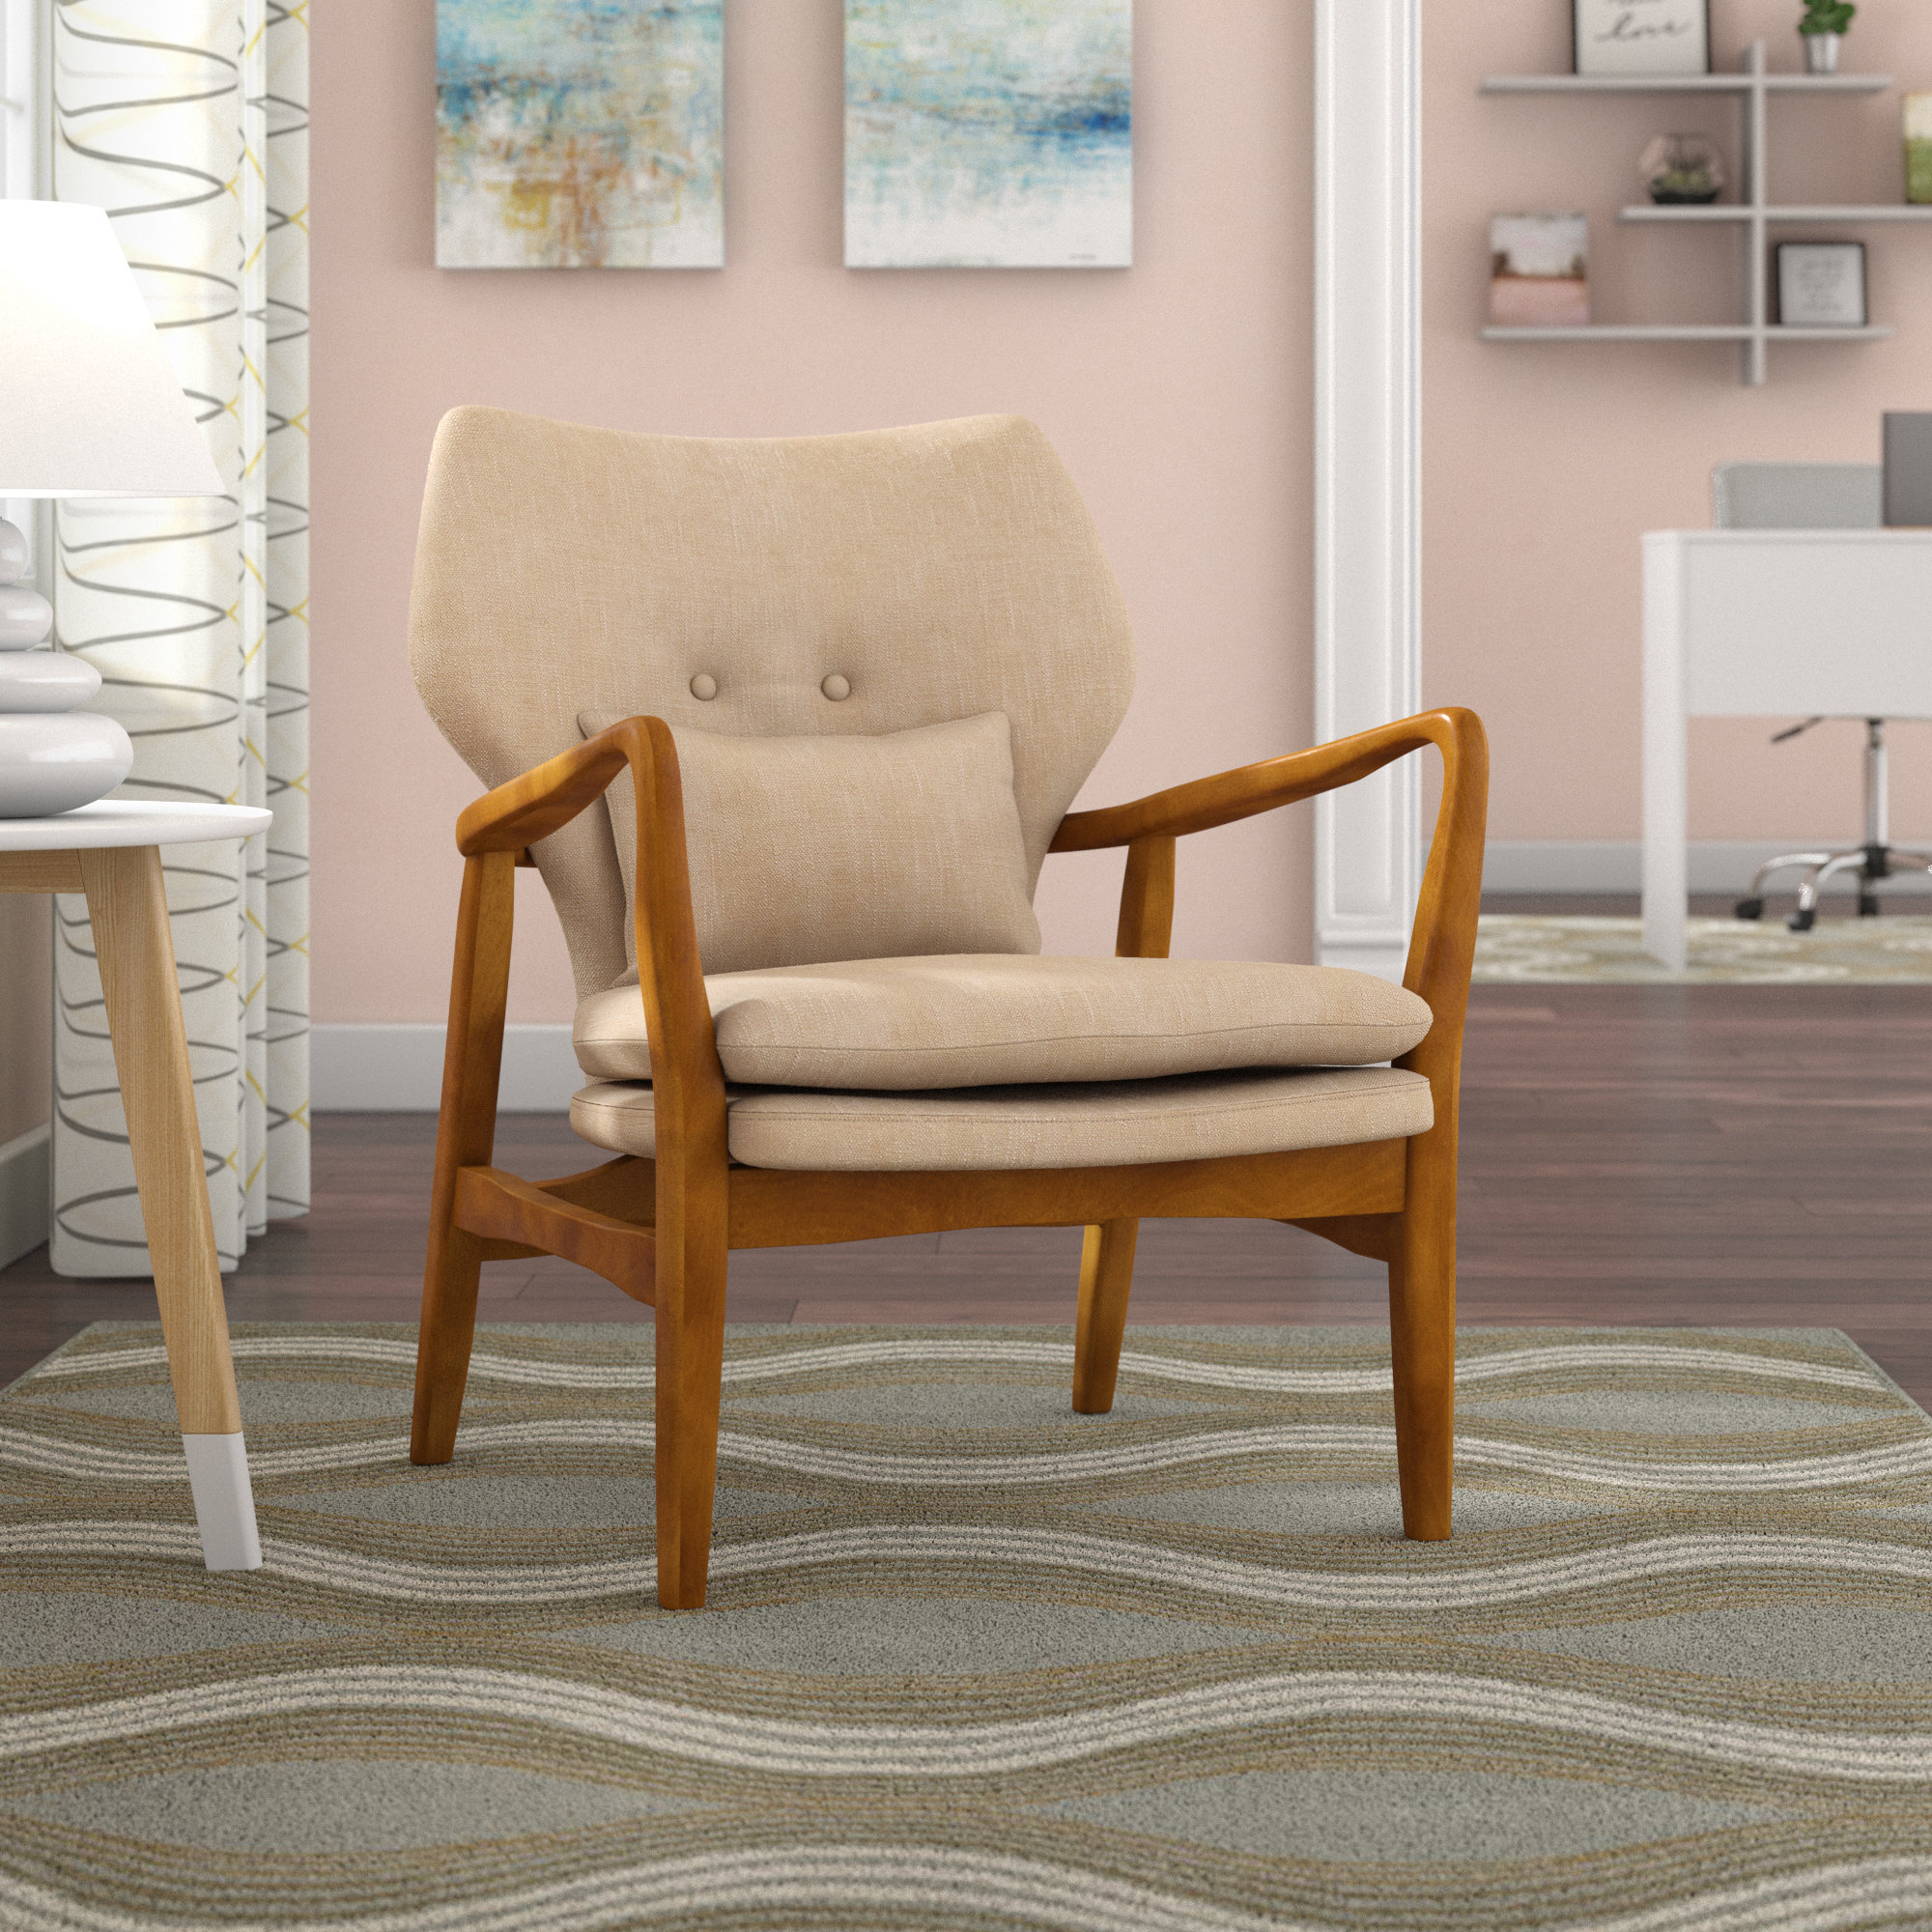 Zipcode Design Andersen Armchair & Reviews | Wayfair intended for Katrina Beige Swivel Glider Chairs